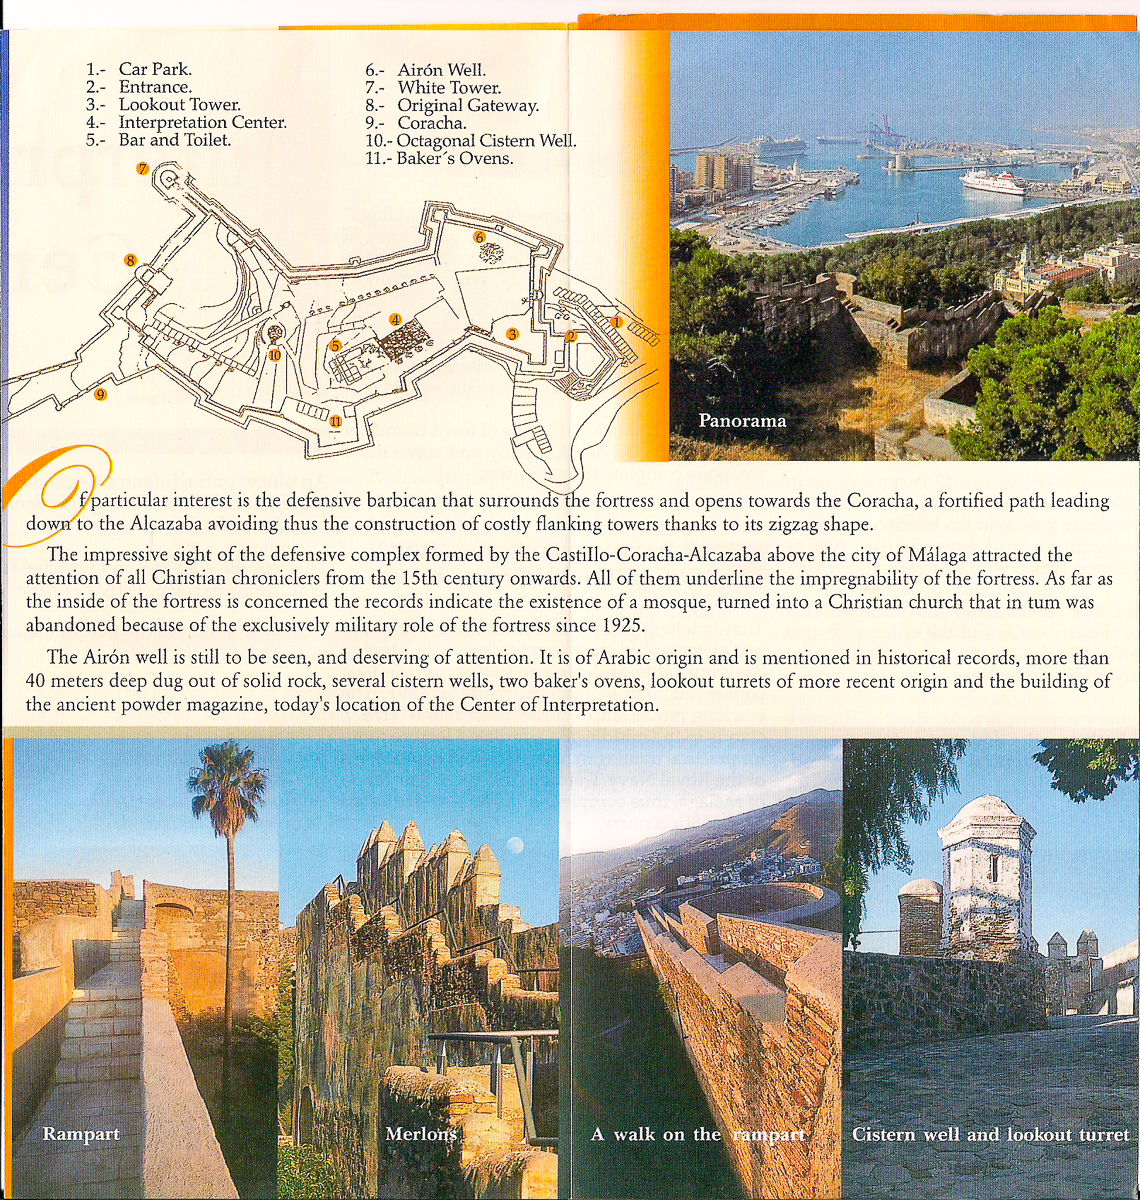 Information about the castle Gibralfaro